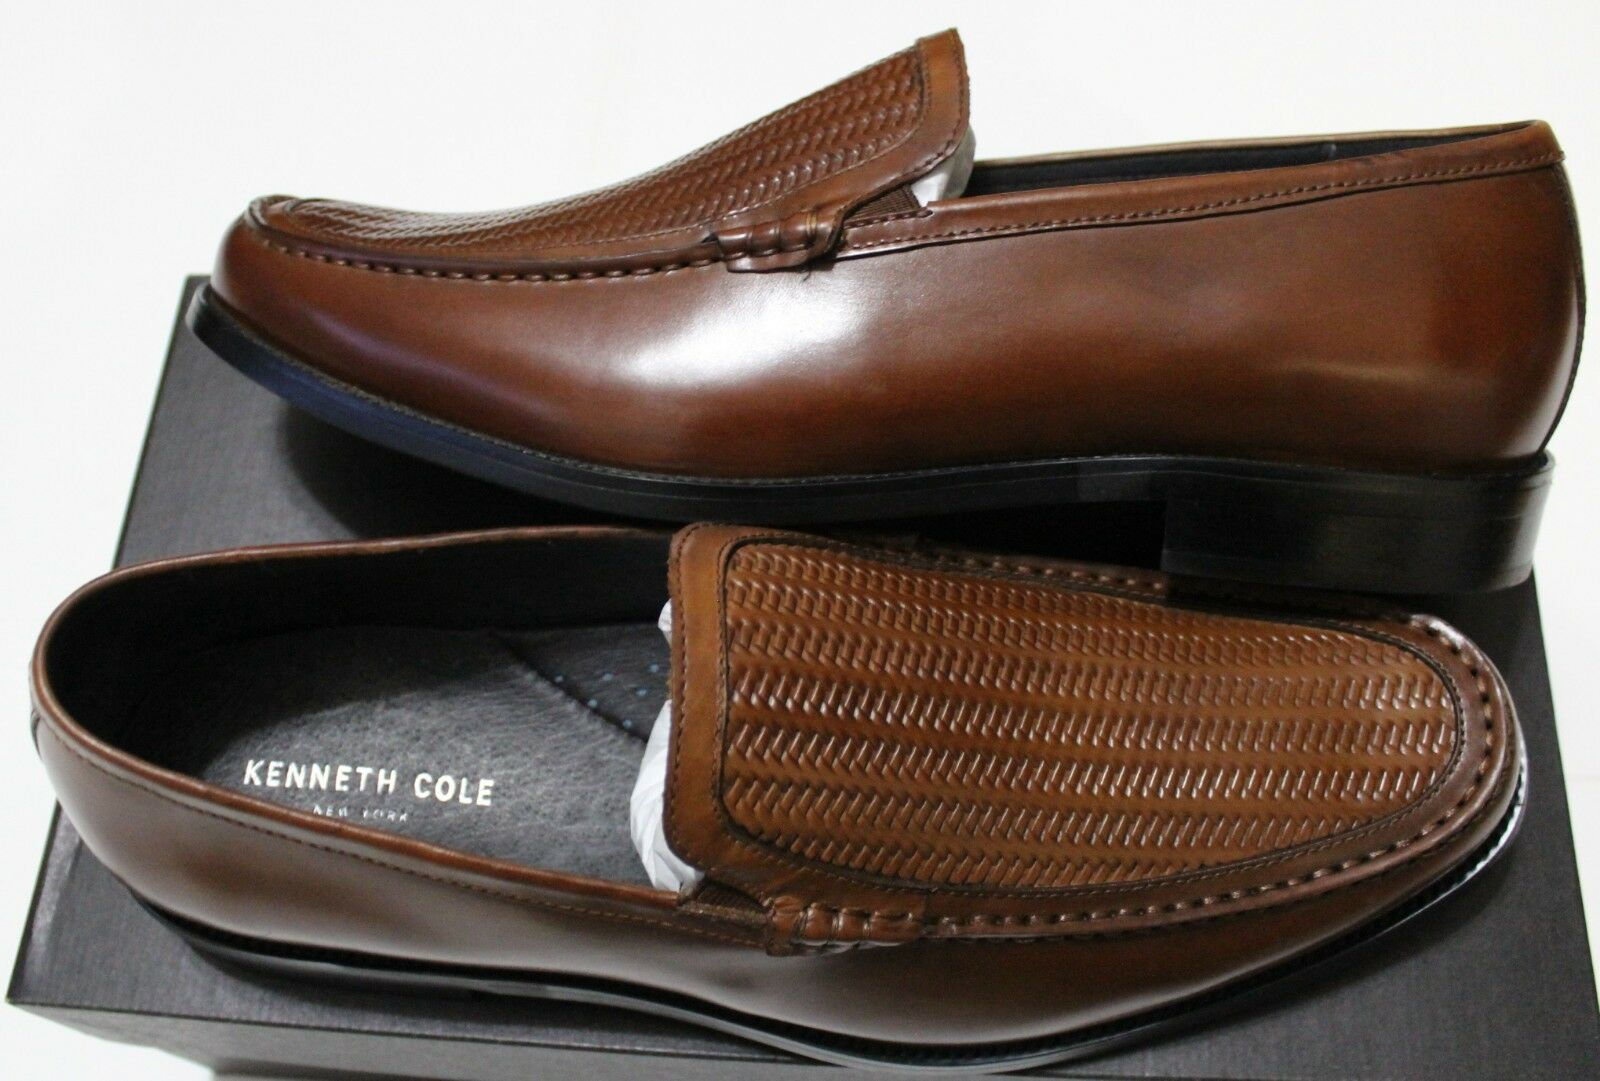 160 160 160 Kenneth Cole New York Filter It Cognac Embossed Loafer 542227